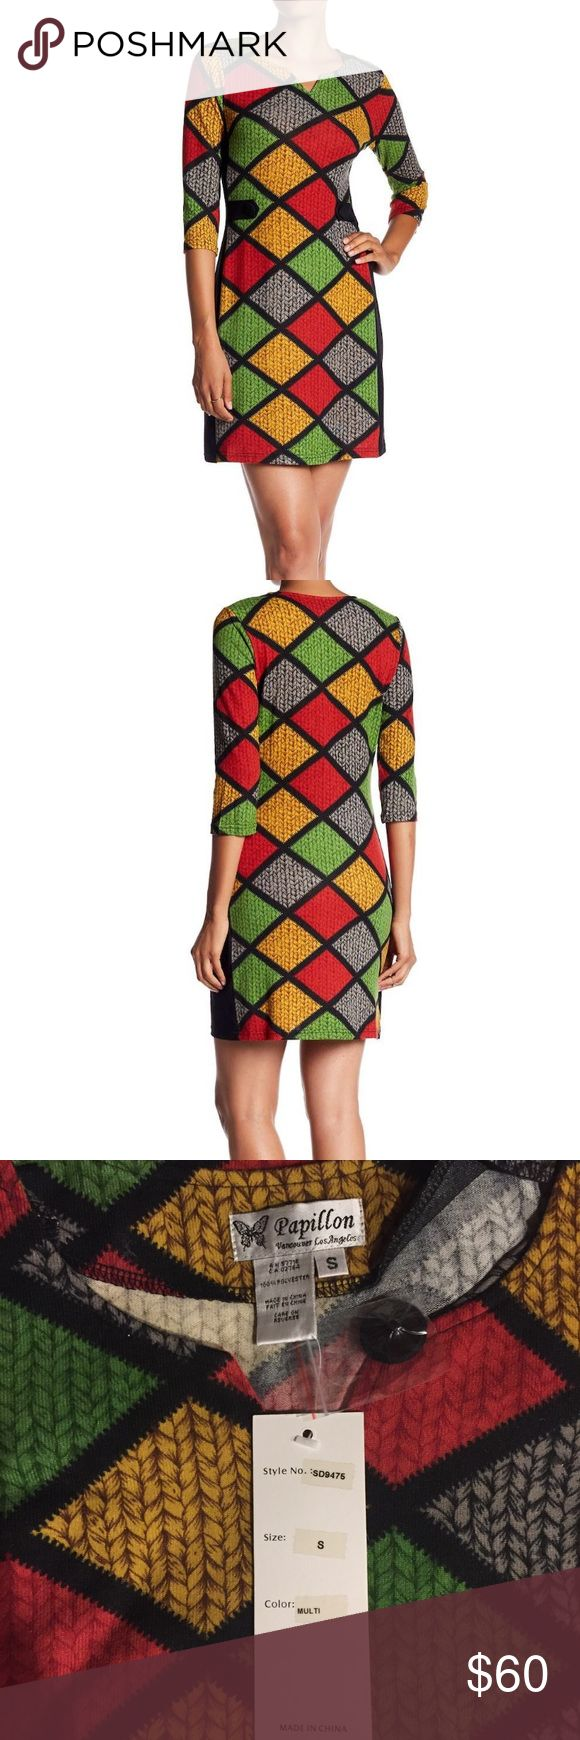 "Papillon 3/4 Knit Shift Dress Papillon 3/4 Knit Shift Dress. Spilt neck, Front button detail, all over pattern, contrast side panels, knit construction, approx 34"". The color is true to the stock photo.. Red, Green, gold, and black. 100% polyester. Fits an XS or S Nordstrom Dresses"